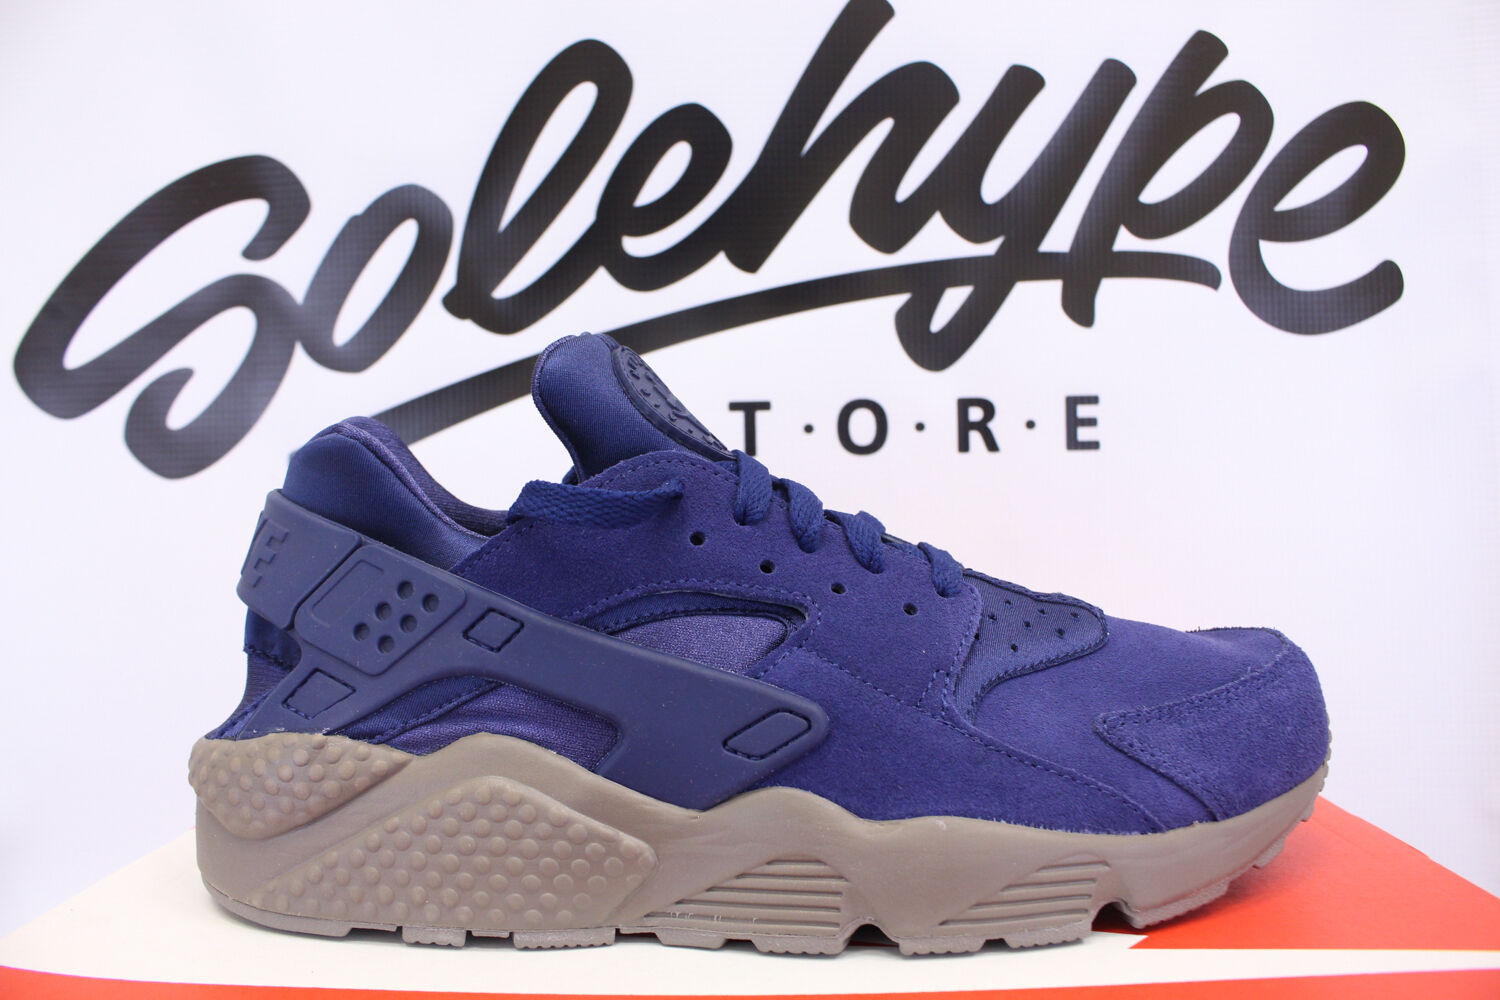 NIKE AIR HUARACHE RUN SE DARK BINARY BLUE SUEDE 852628 400 SZ 9.5